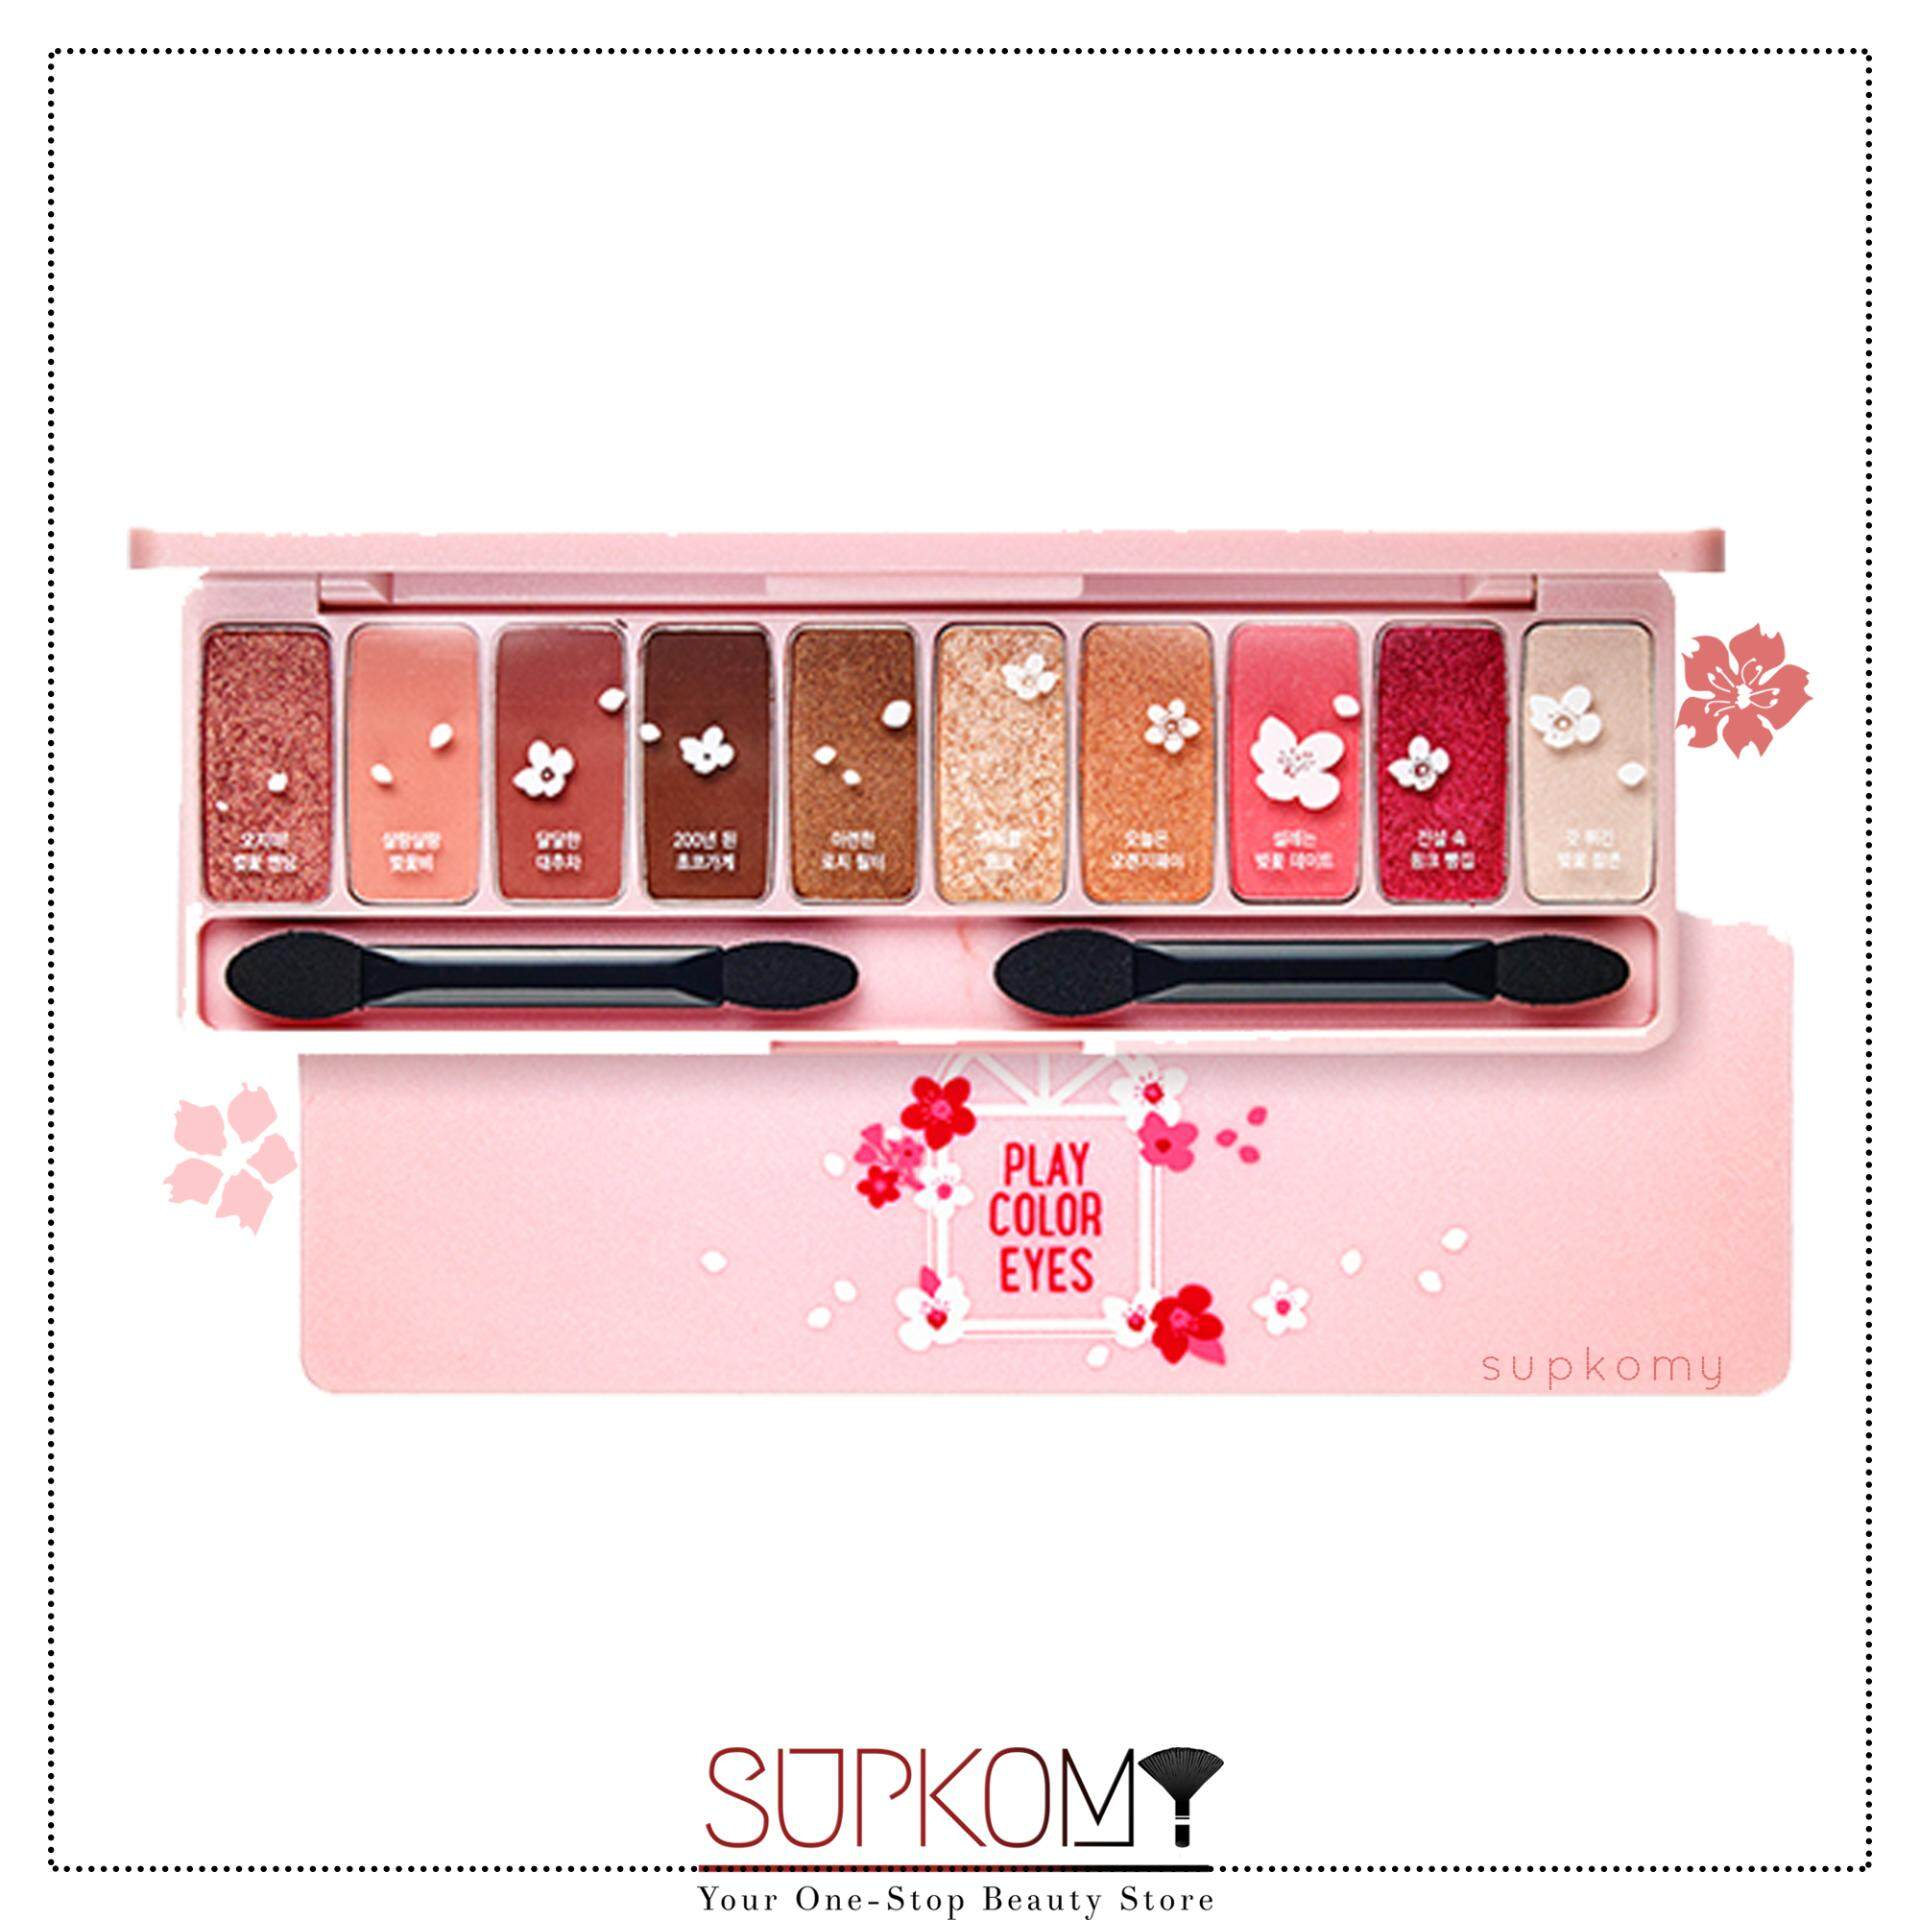 Etude House Play Color Eyes (Cherry Blossom) 100% Authentic